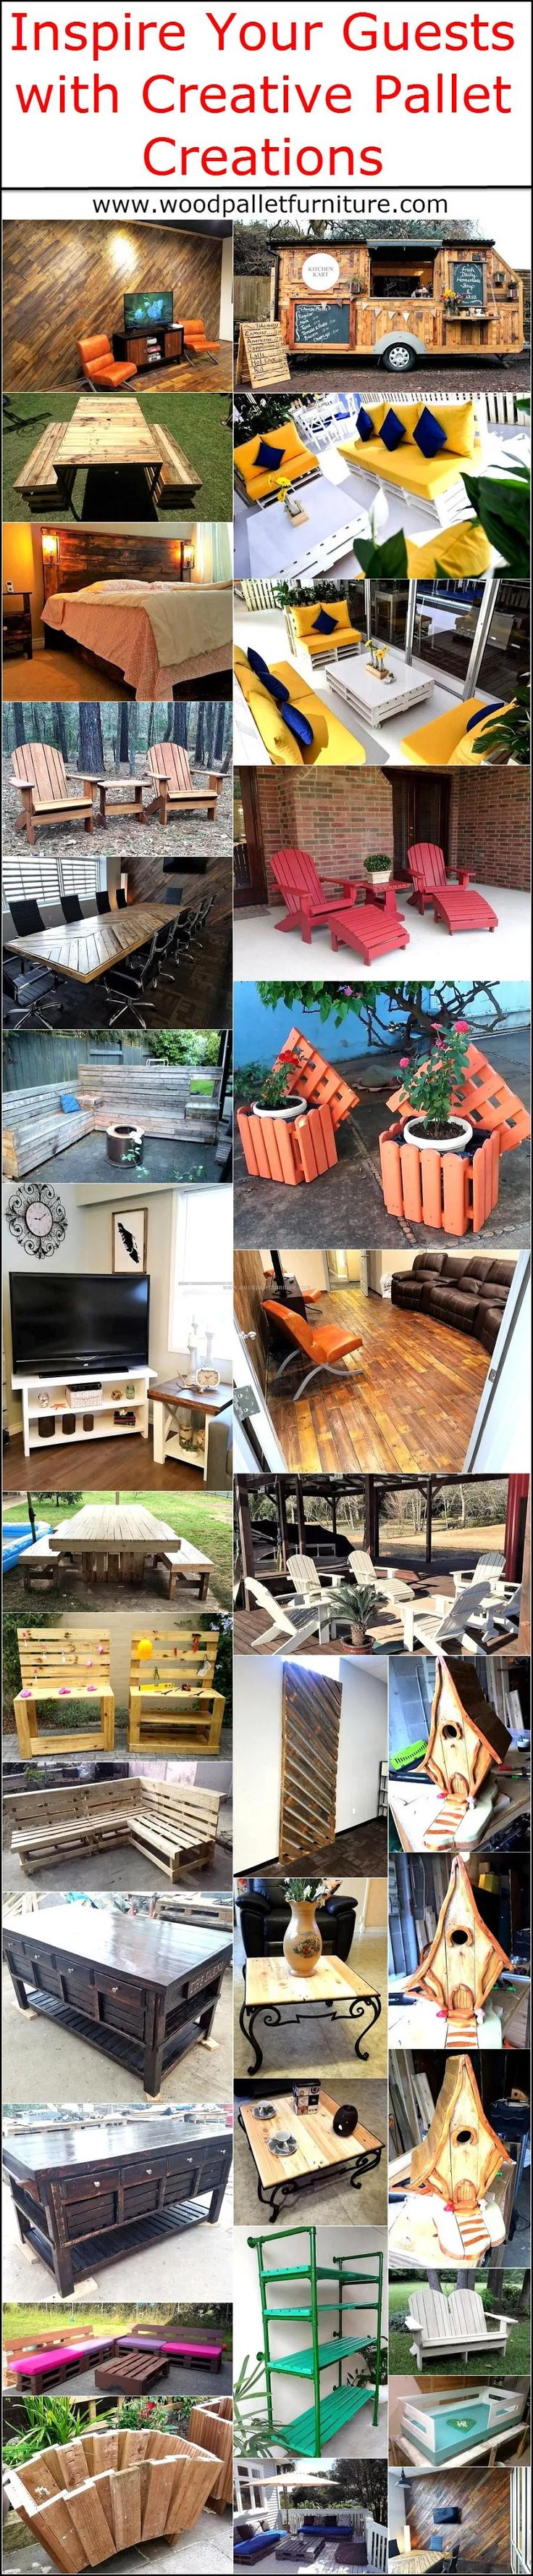 Inspire Your Guests with Creative Pallet Creations